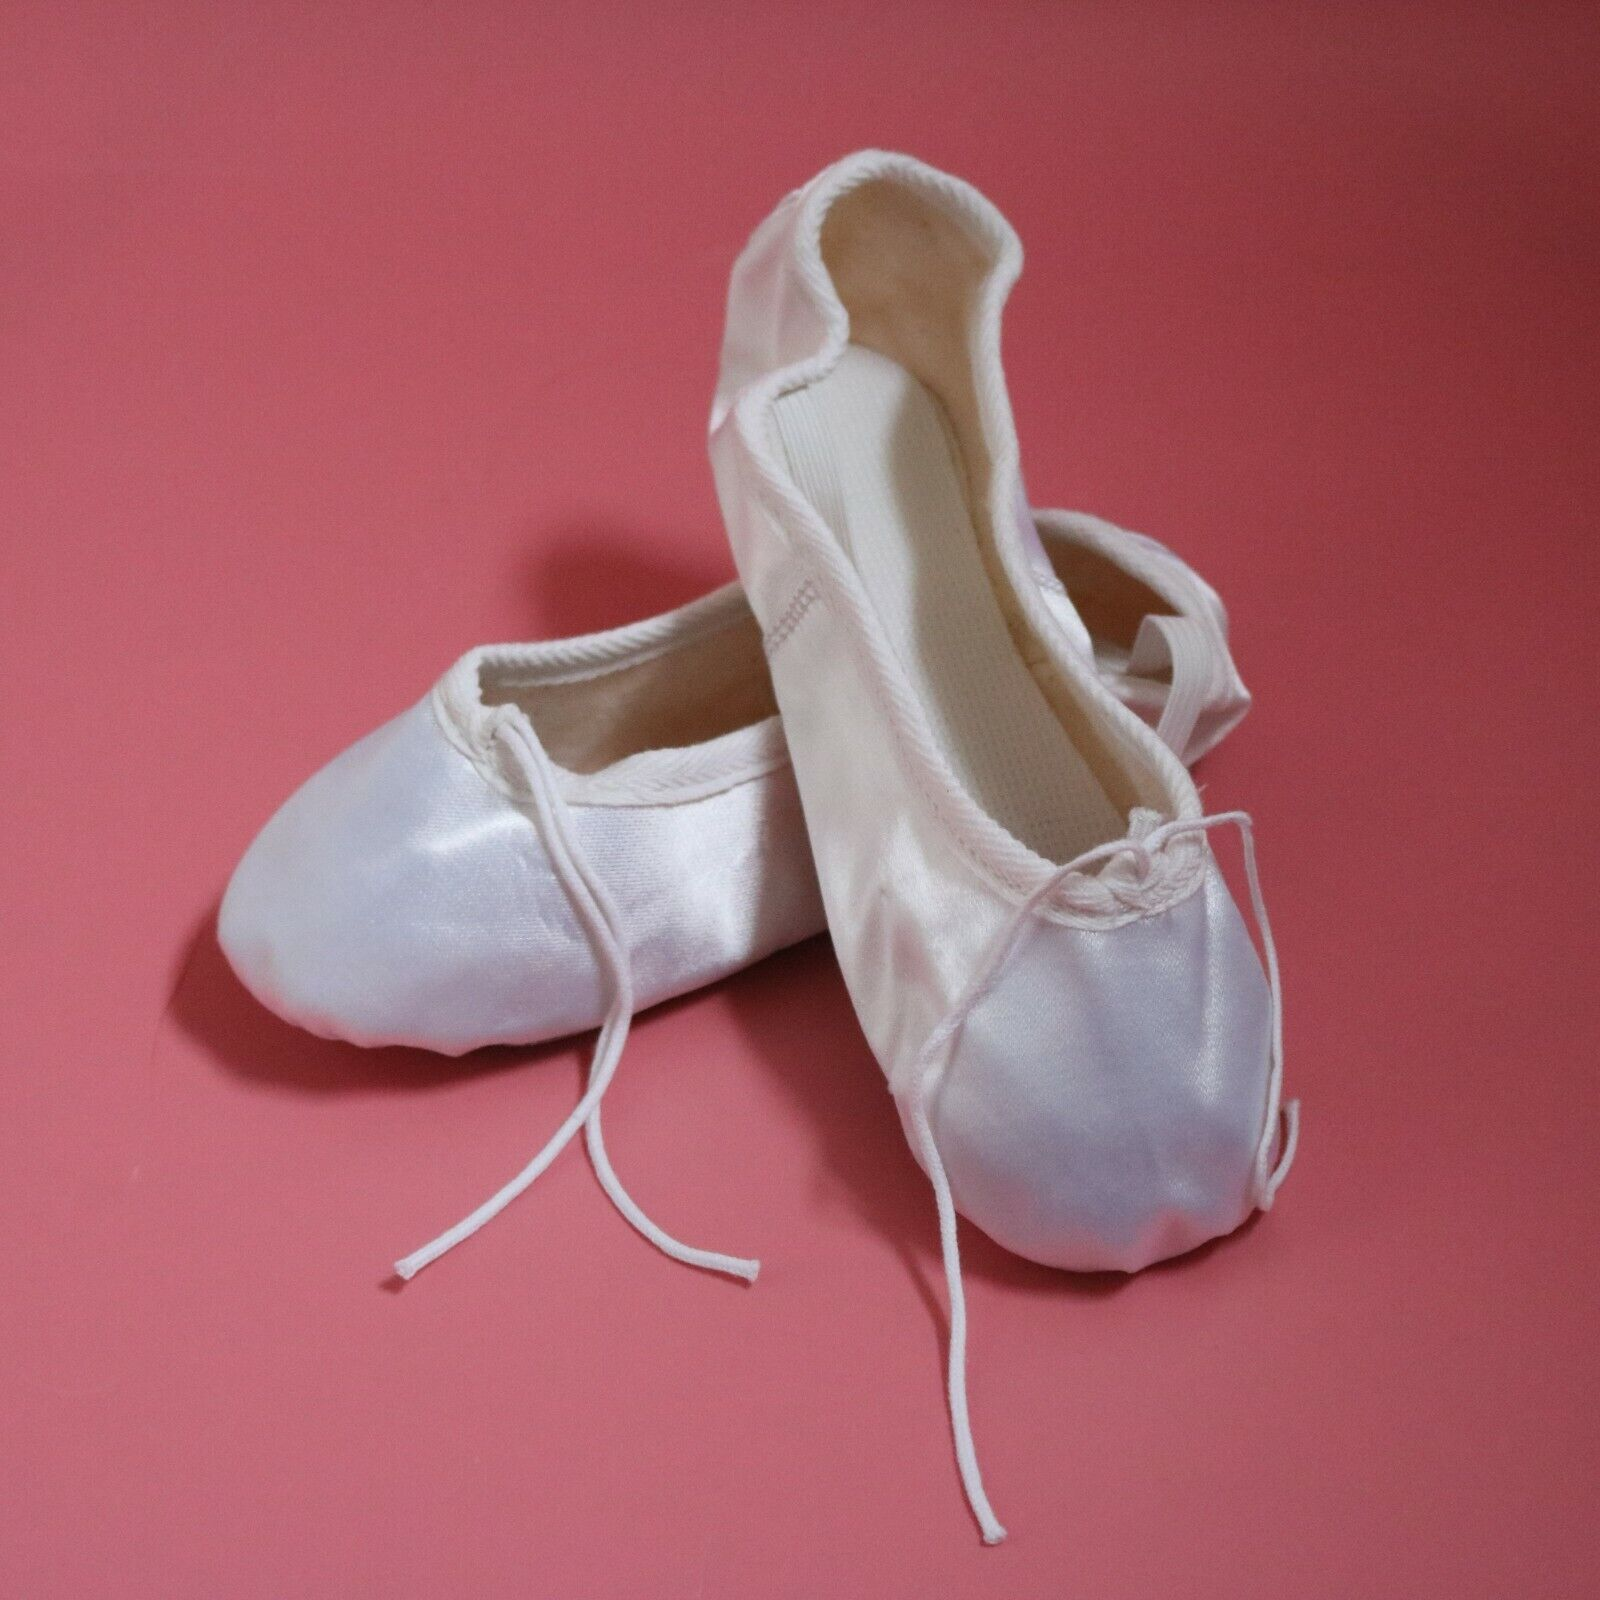 White Satin Ballet Shoes From Infant to Adult Sizes NEW